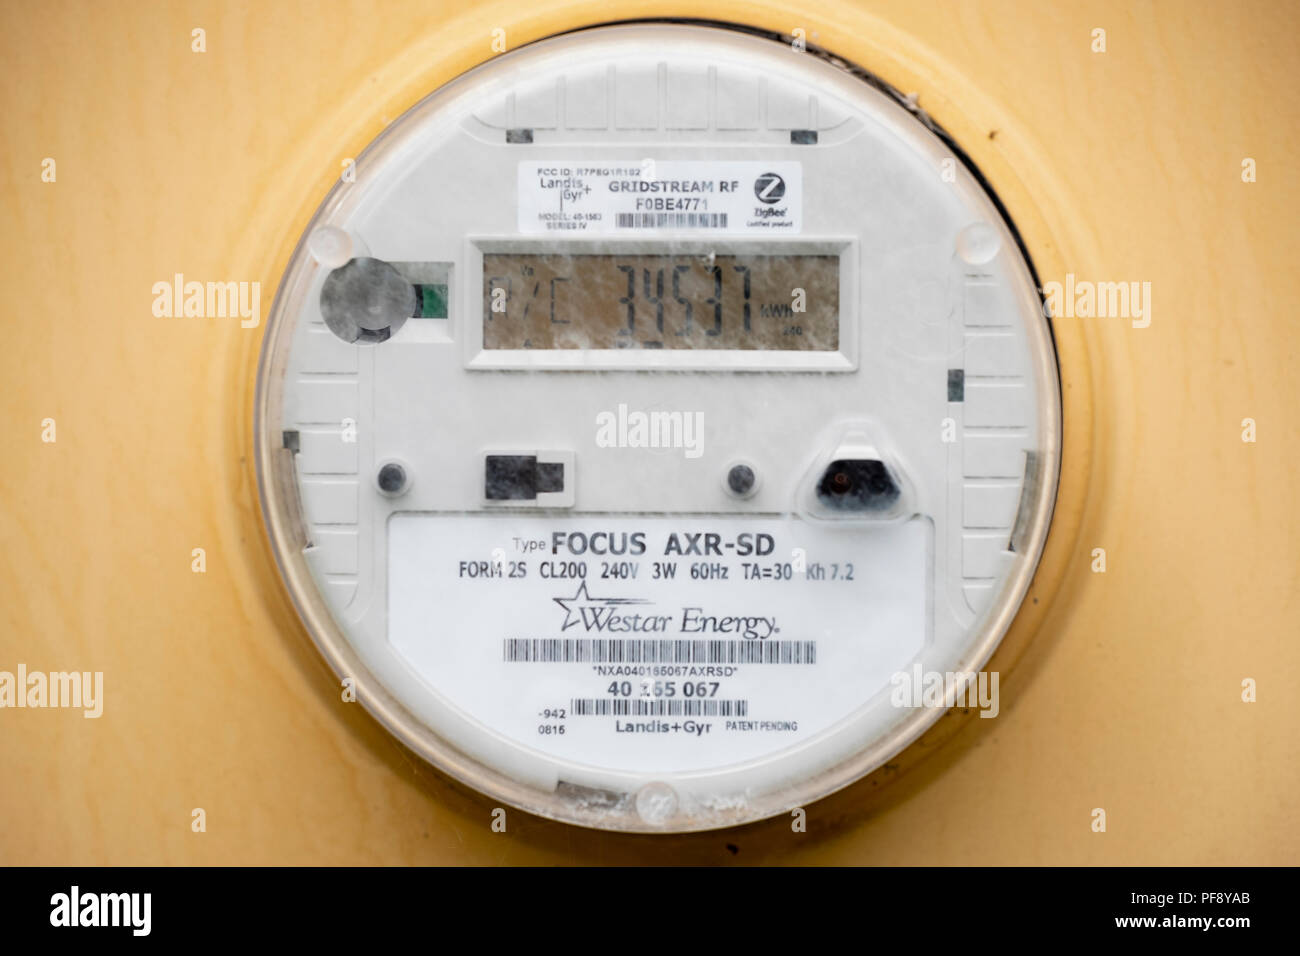 An electrical measuring meter measuring electrical usage of a home in Wichita, Kansas, USA. - Stock Image